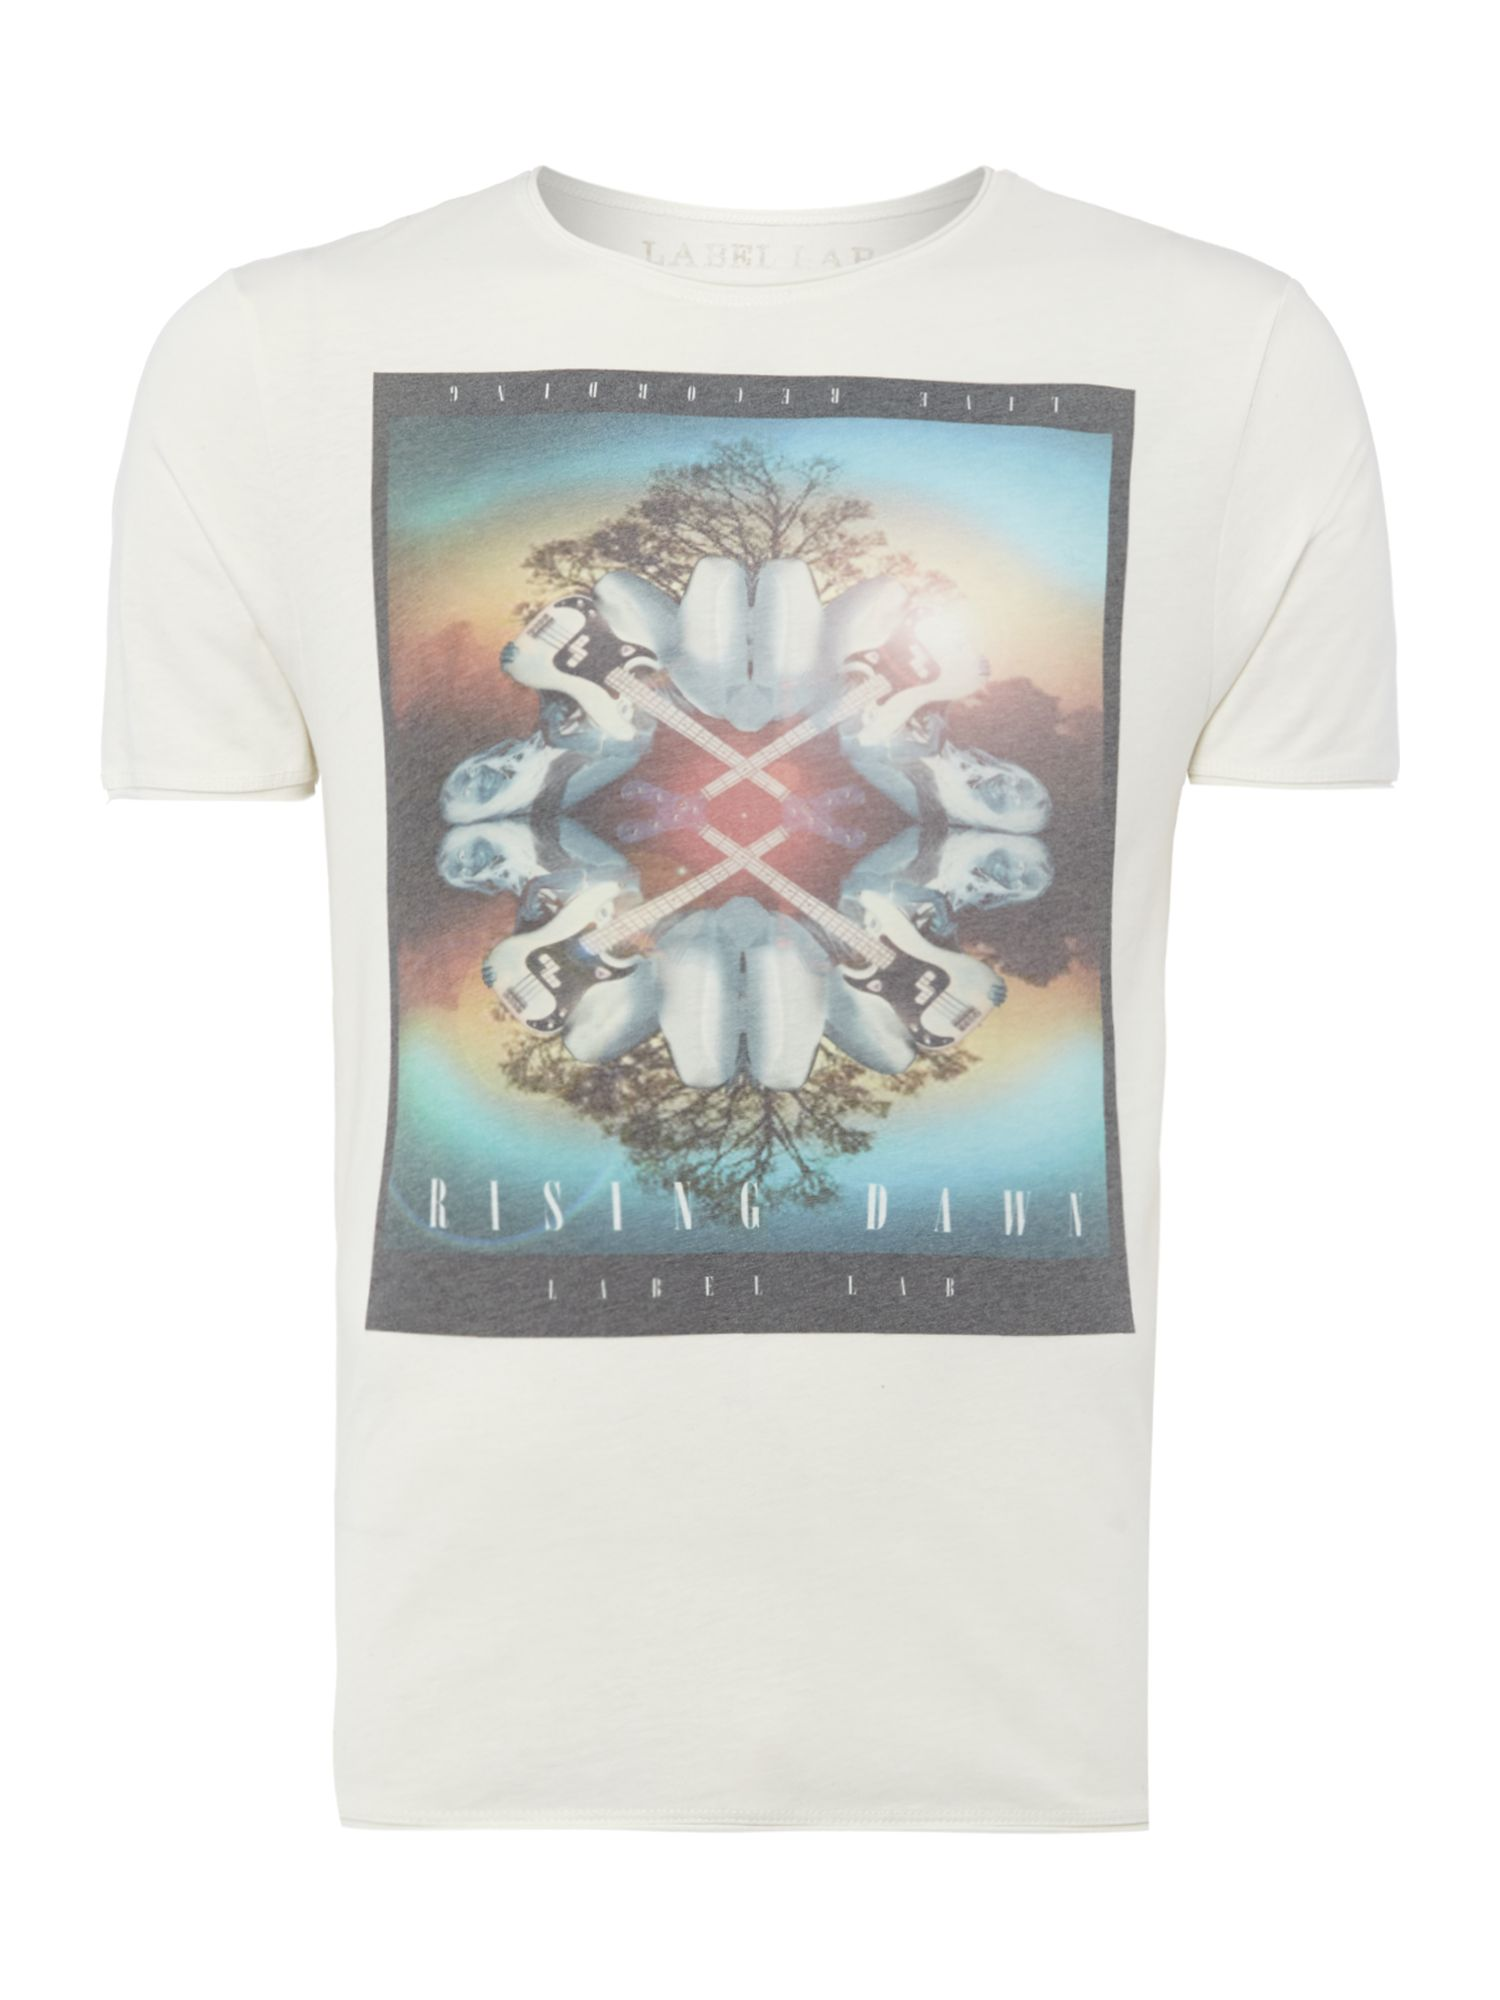 Rising sun graphic tee